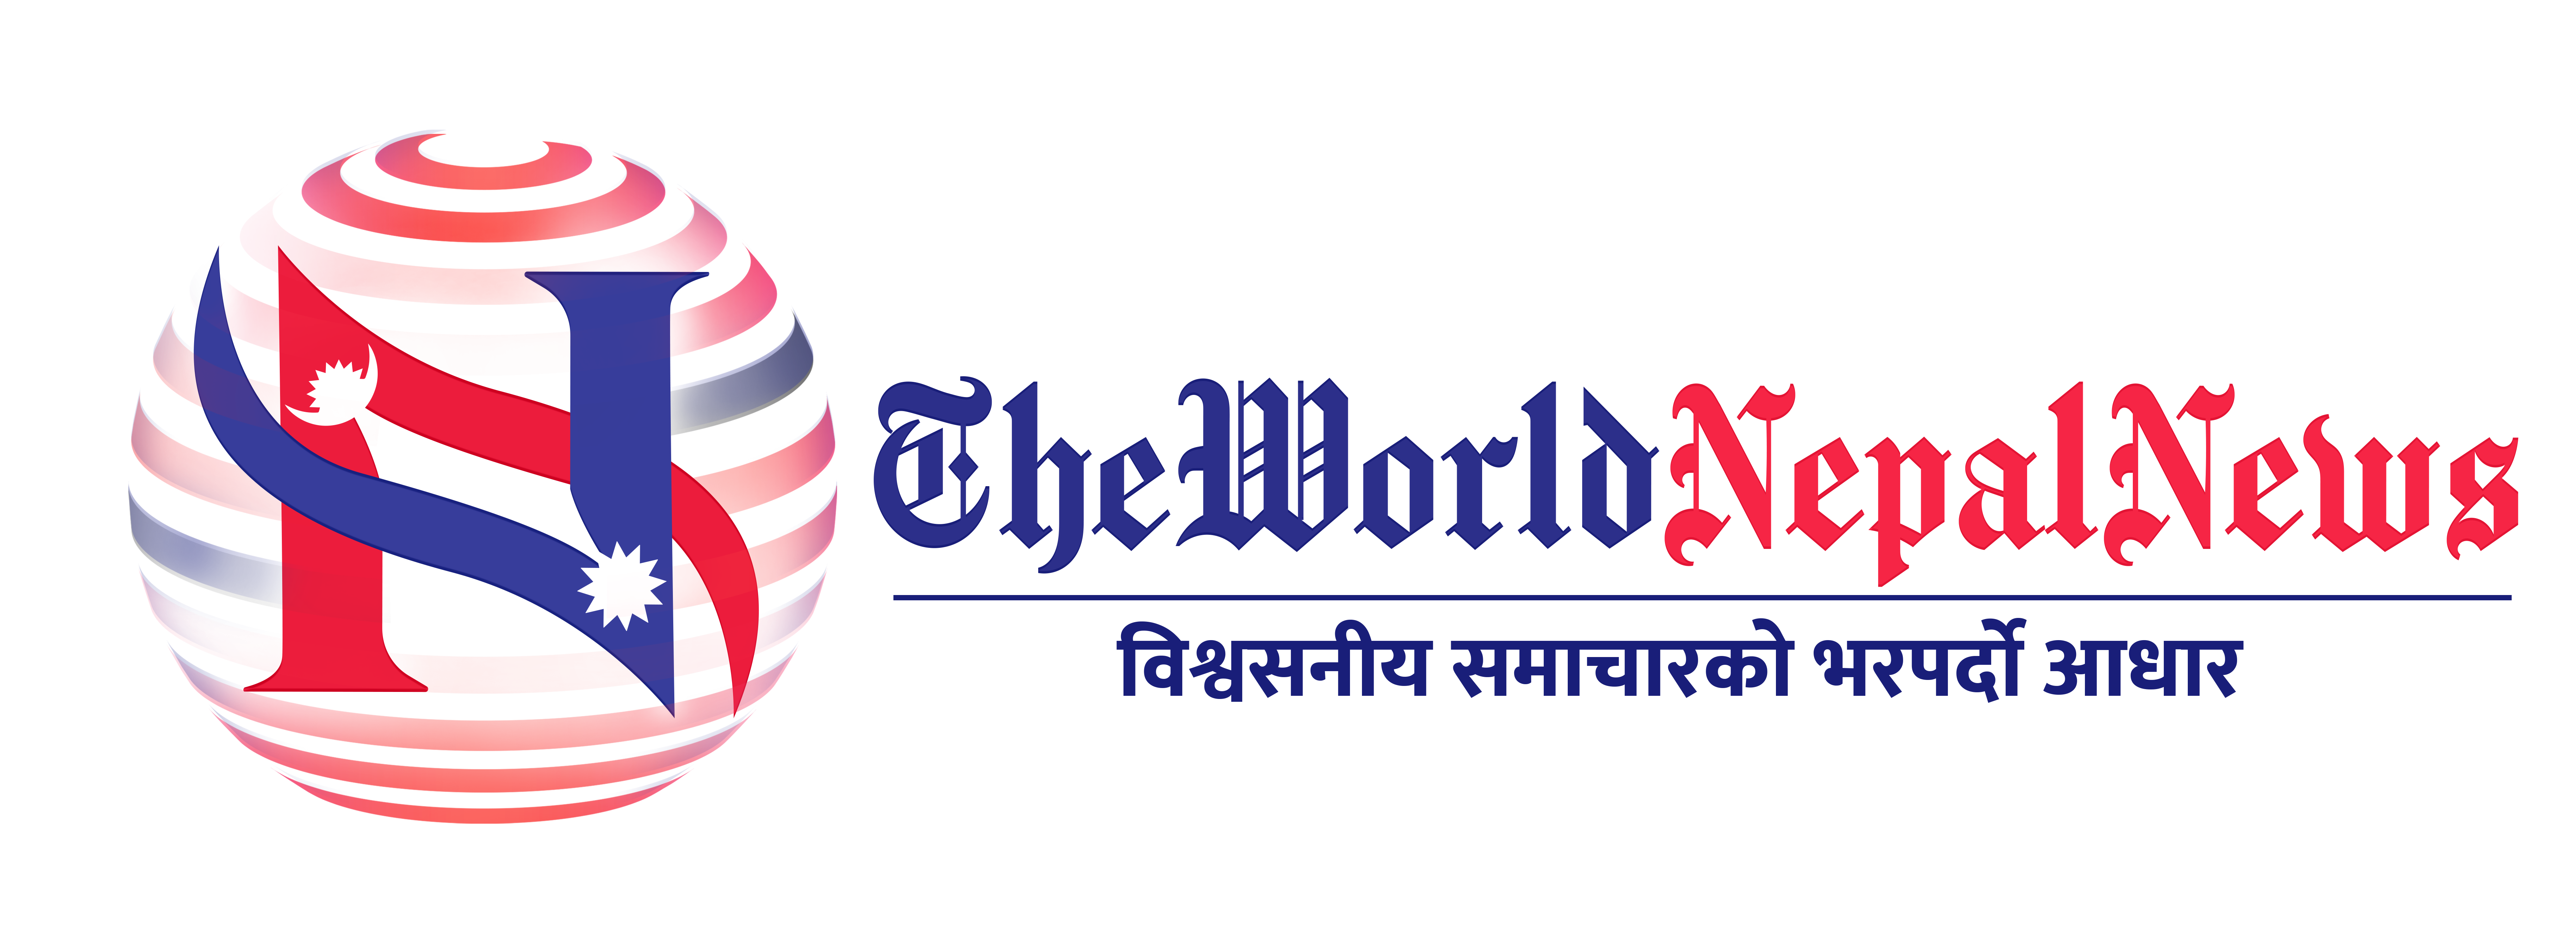 The World Nepal News